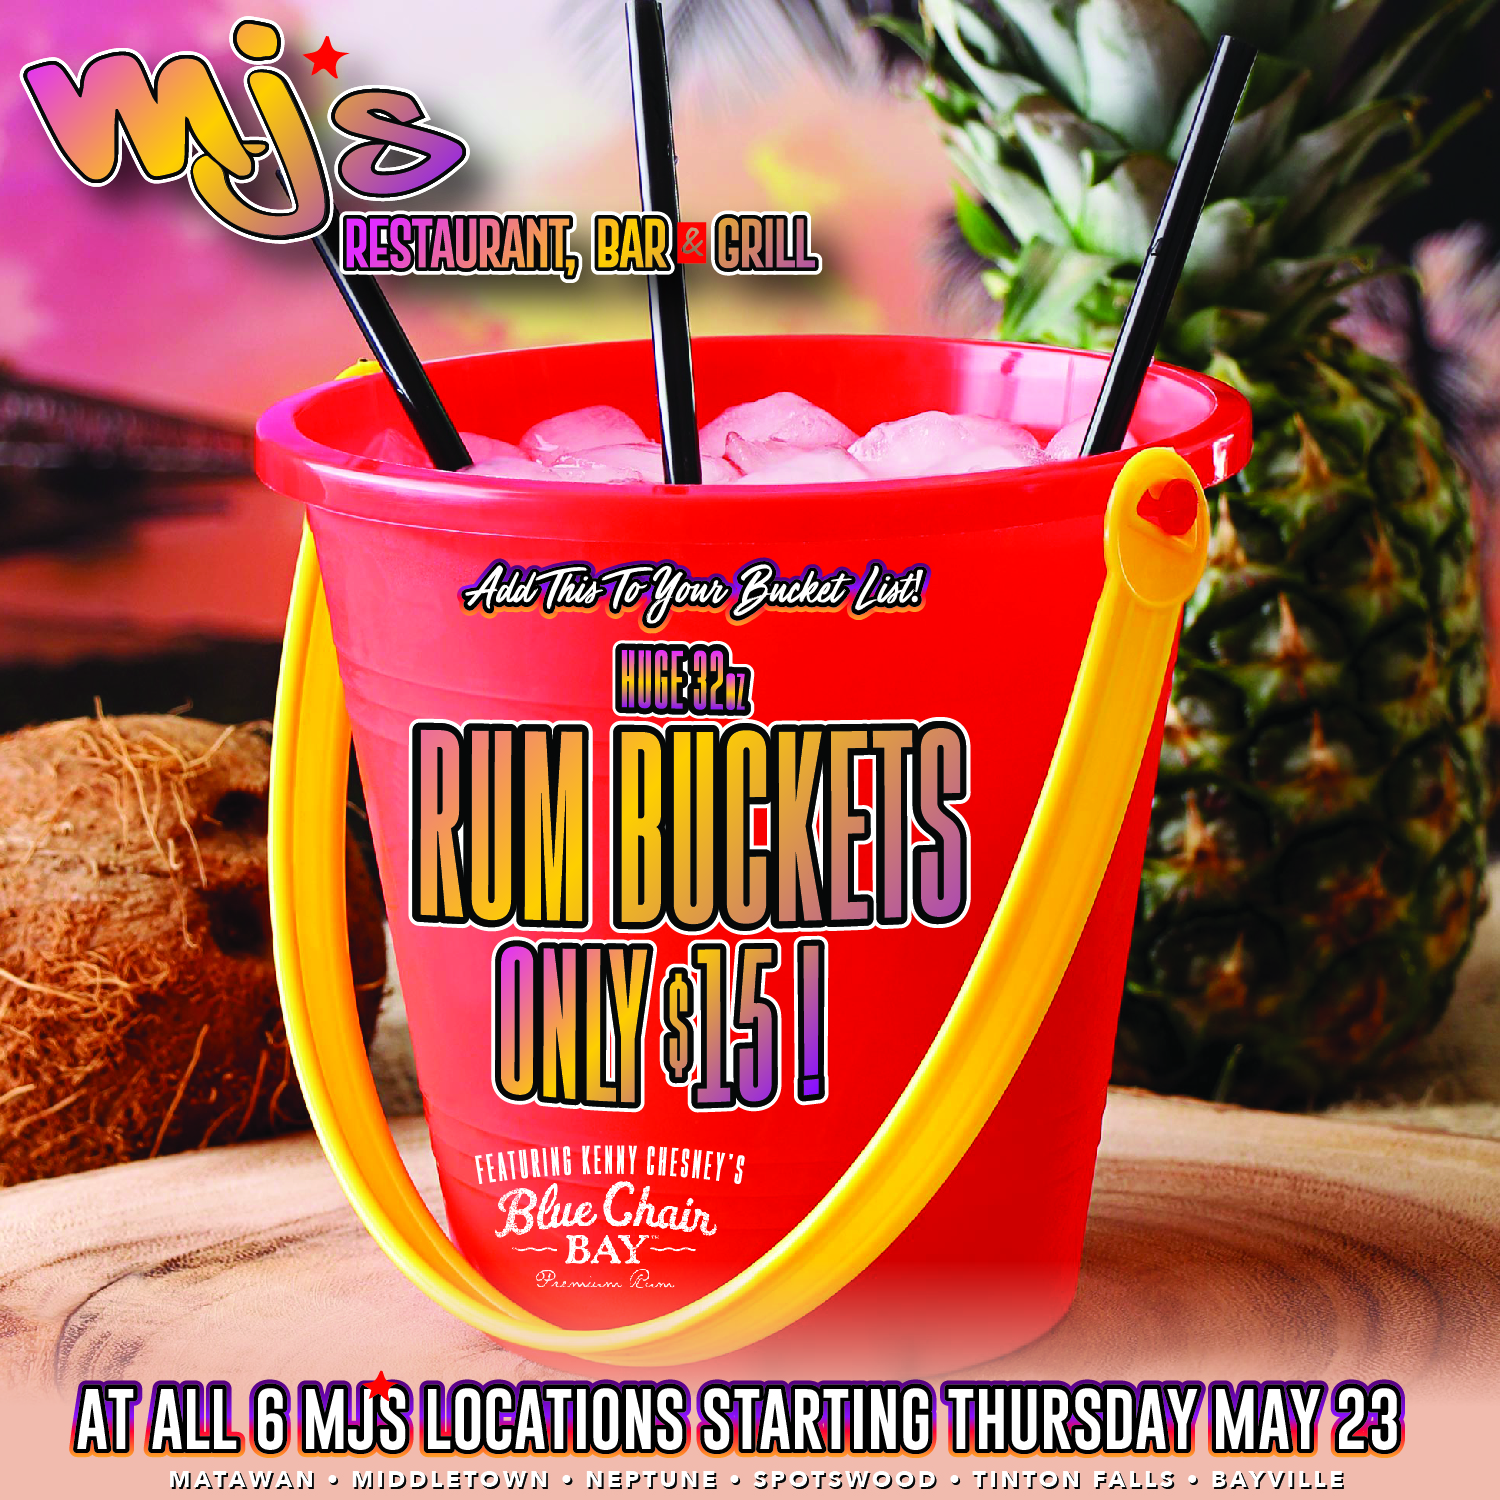 Add This to Your Bucket List-Rum Buckets only $15!